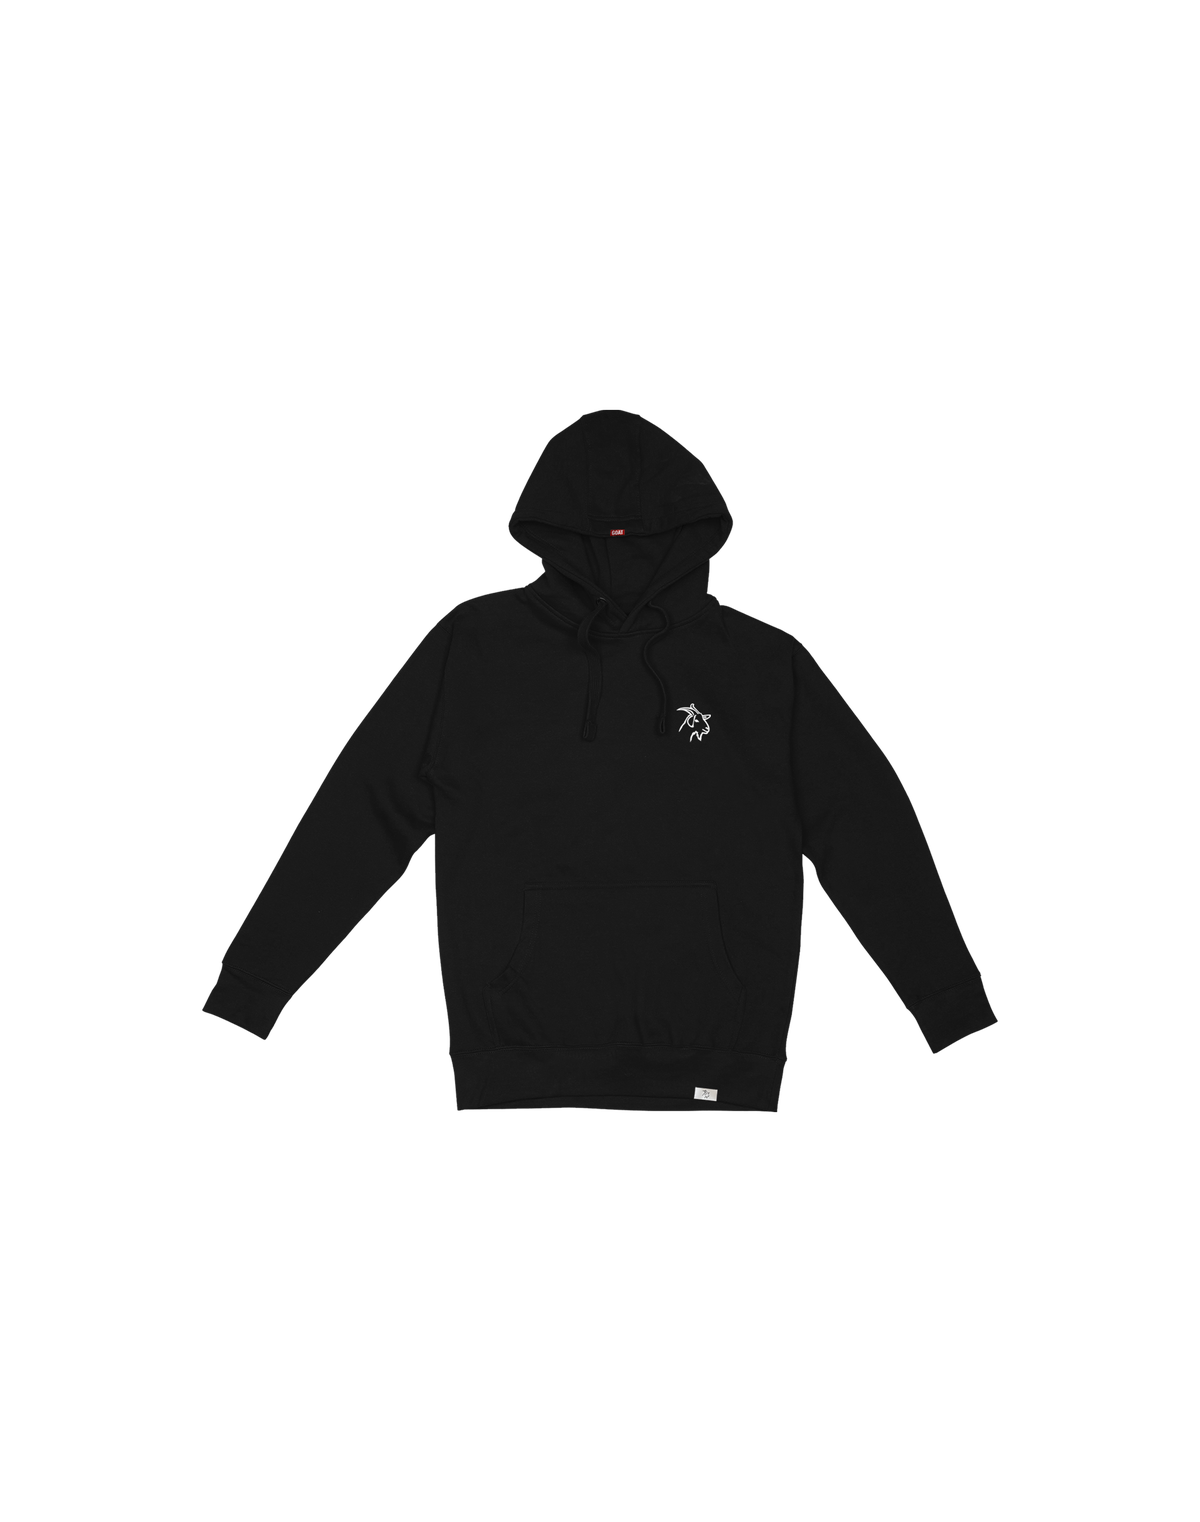 BLACK CLASSIC EMBROIDERED GOAT HOODIE